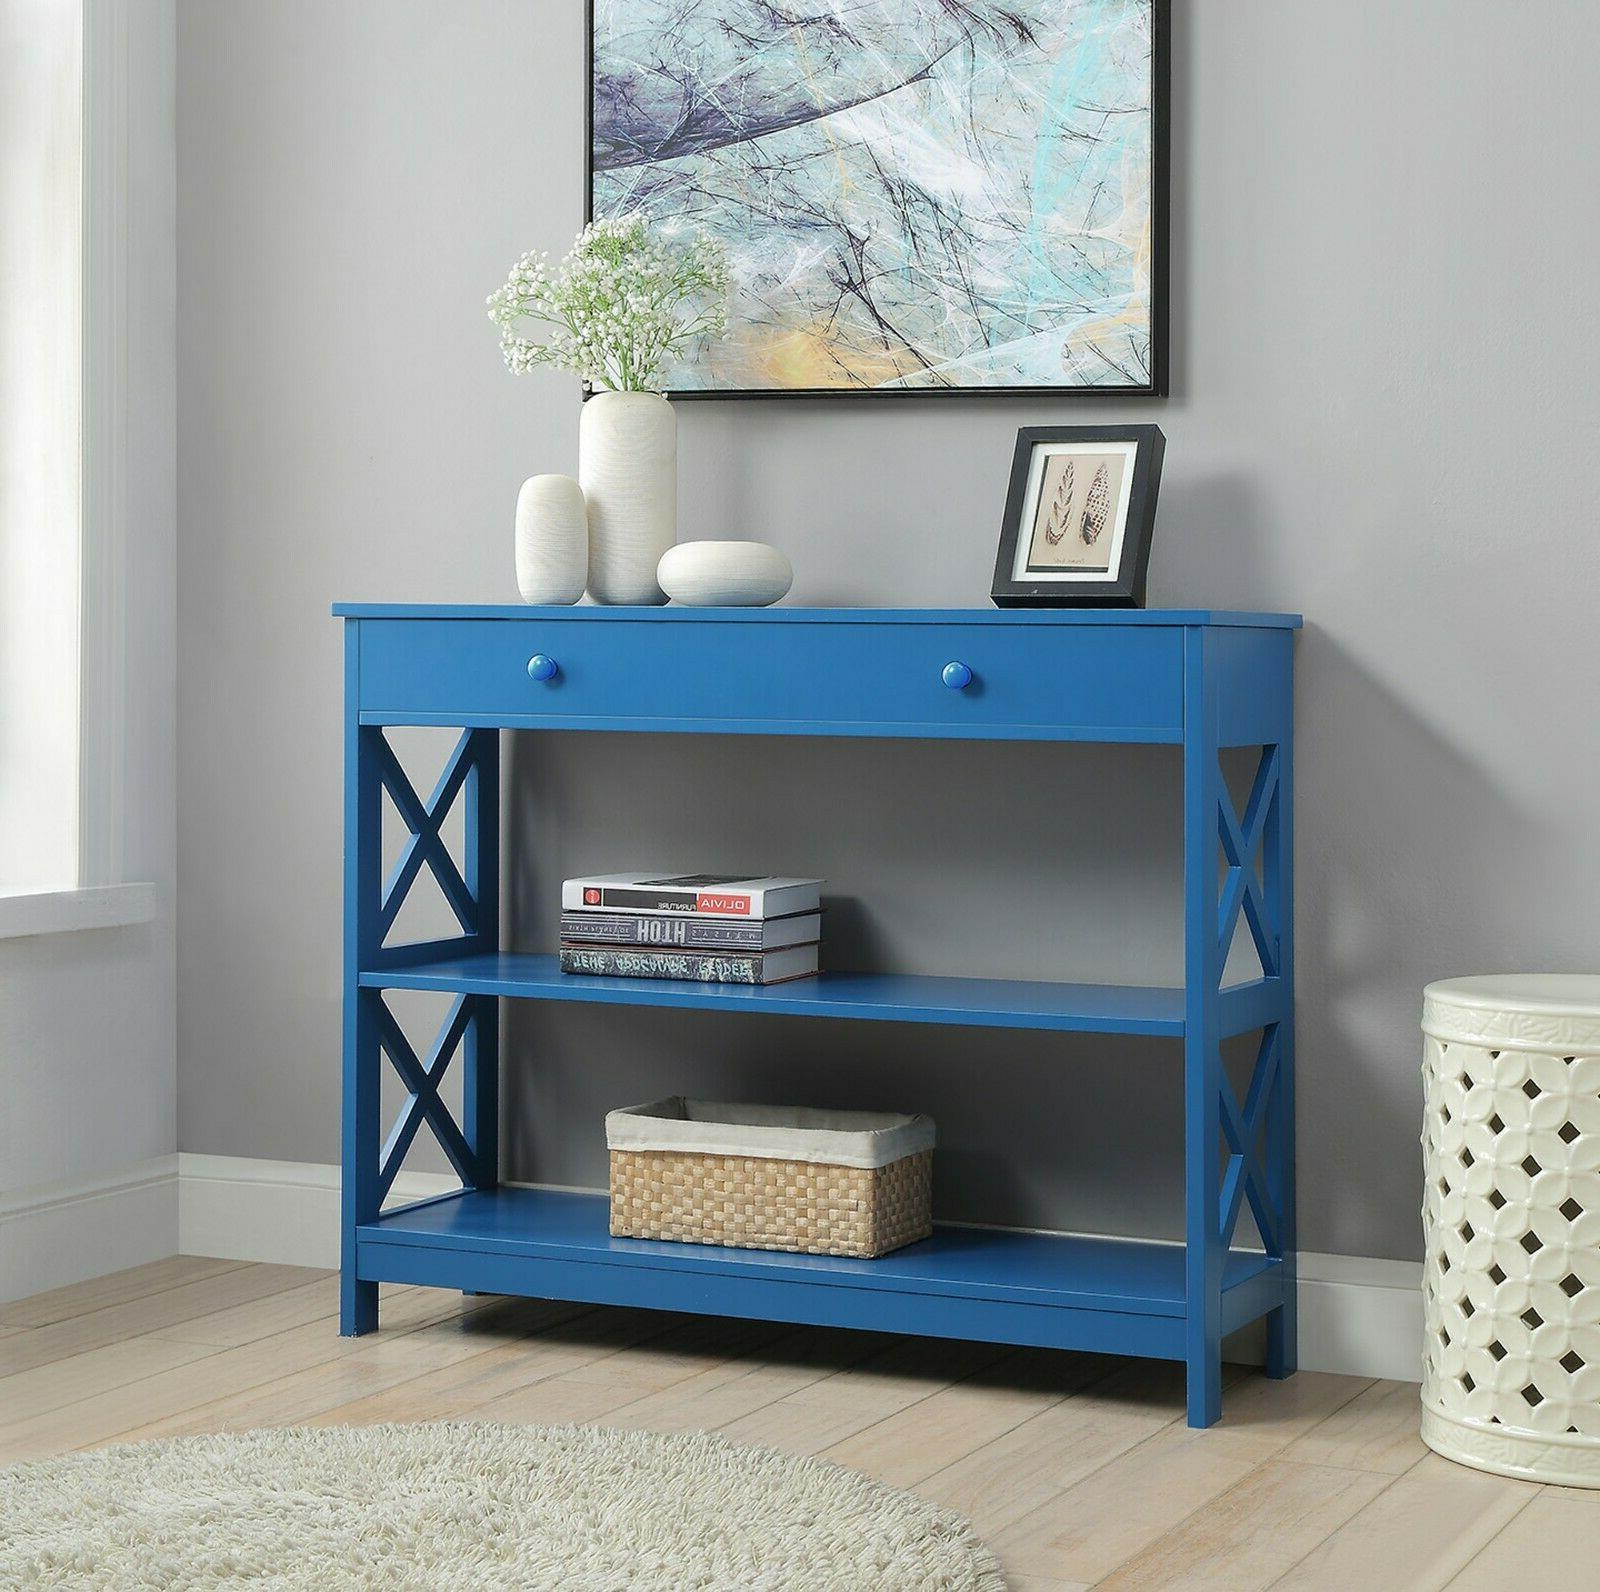 Oxford Console Accent Hall Table Shelves BLUE